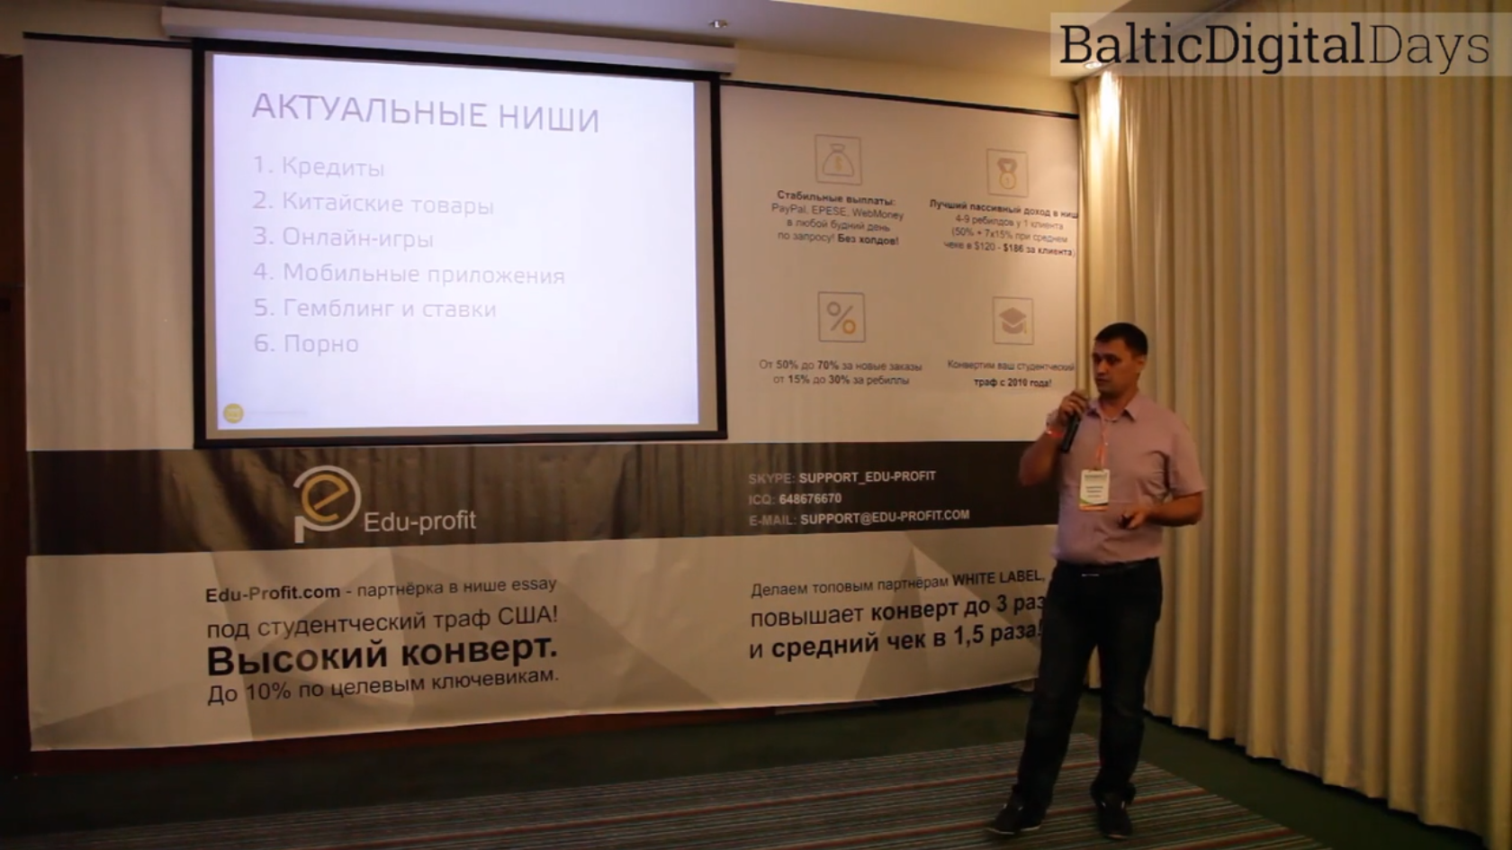 Отзыв SEO-аспиранта на доклады с Baltic Digital Days 2015